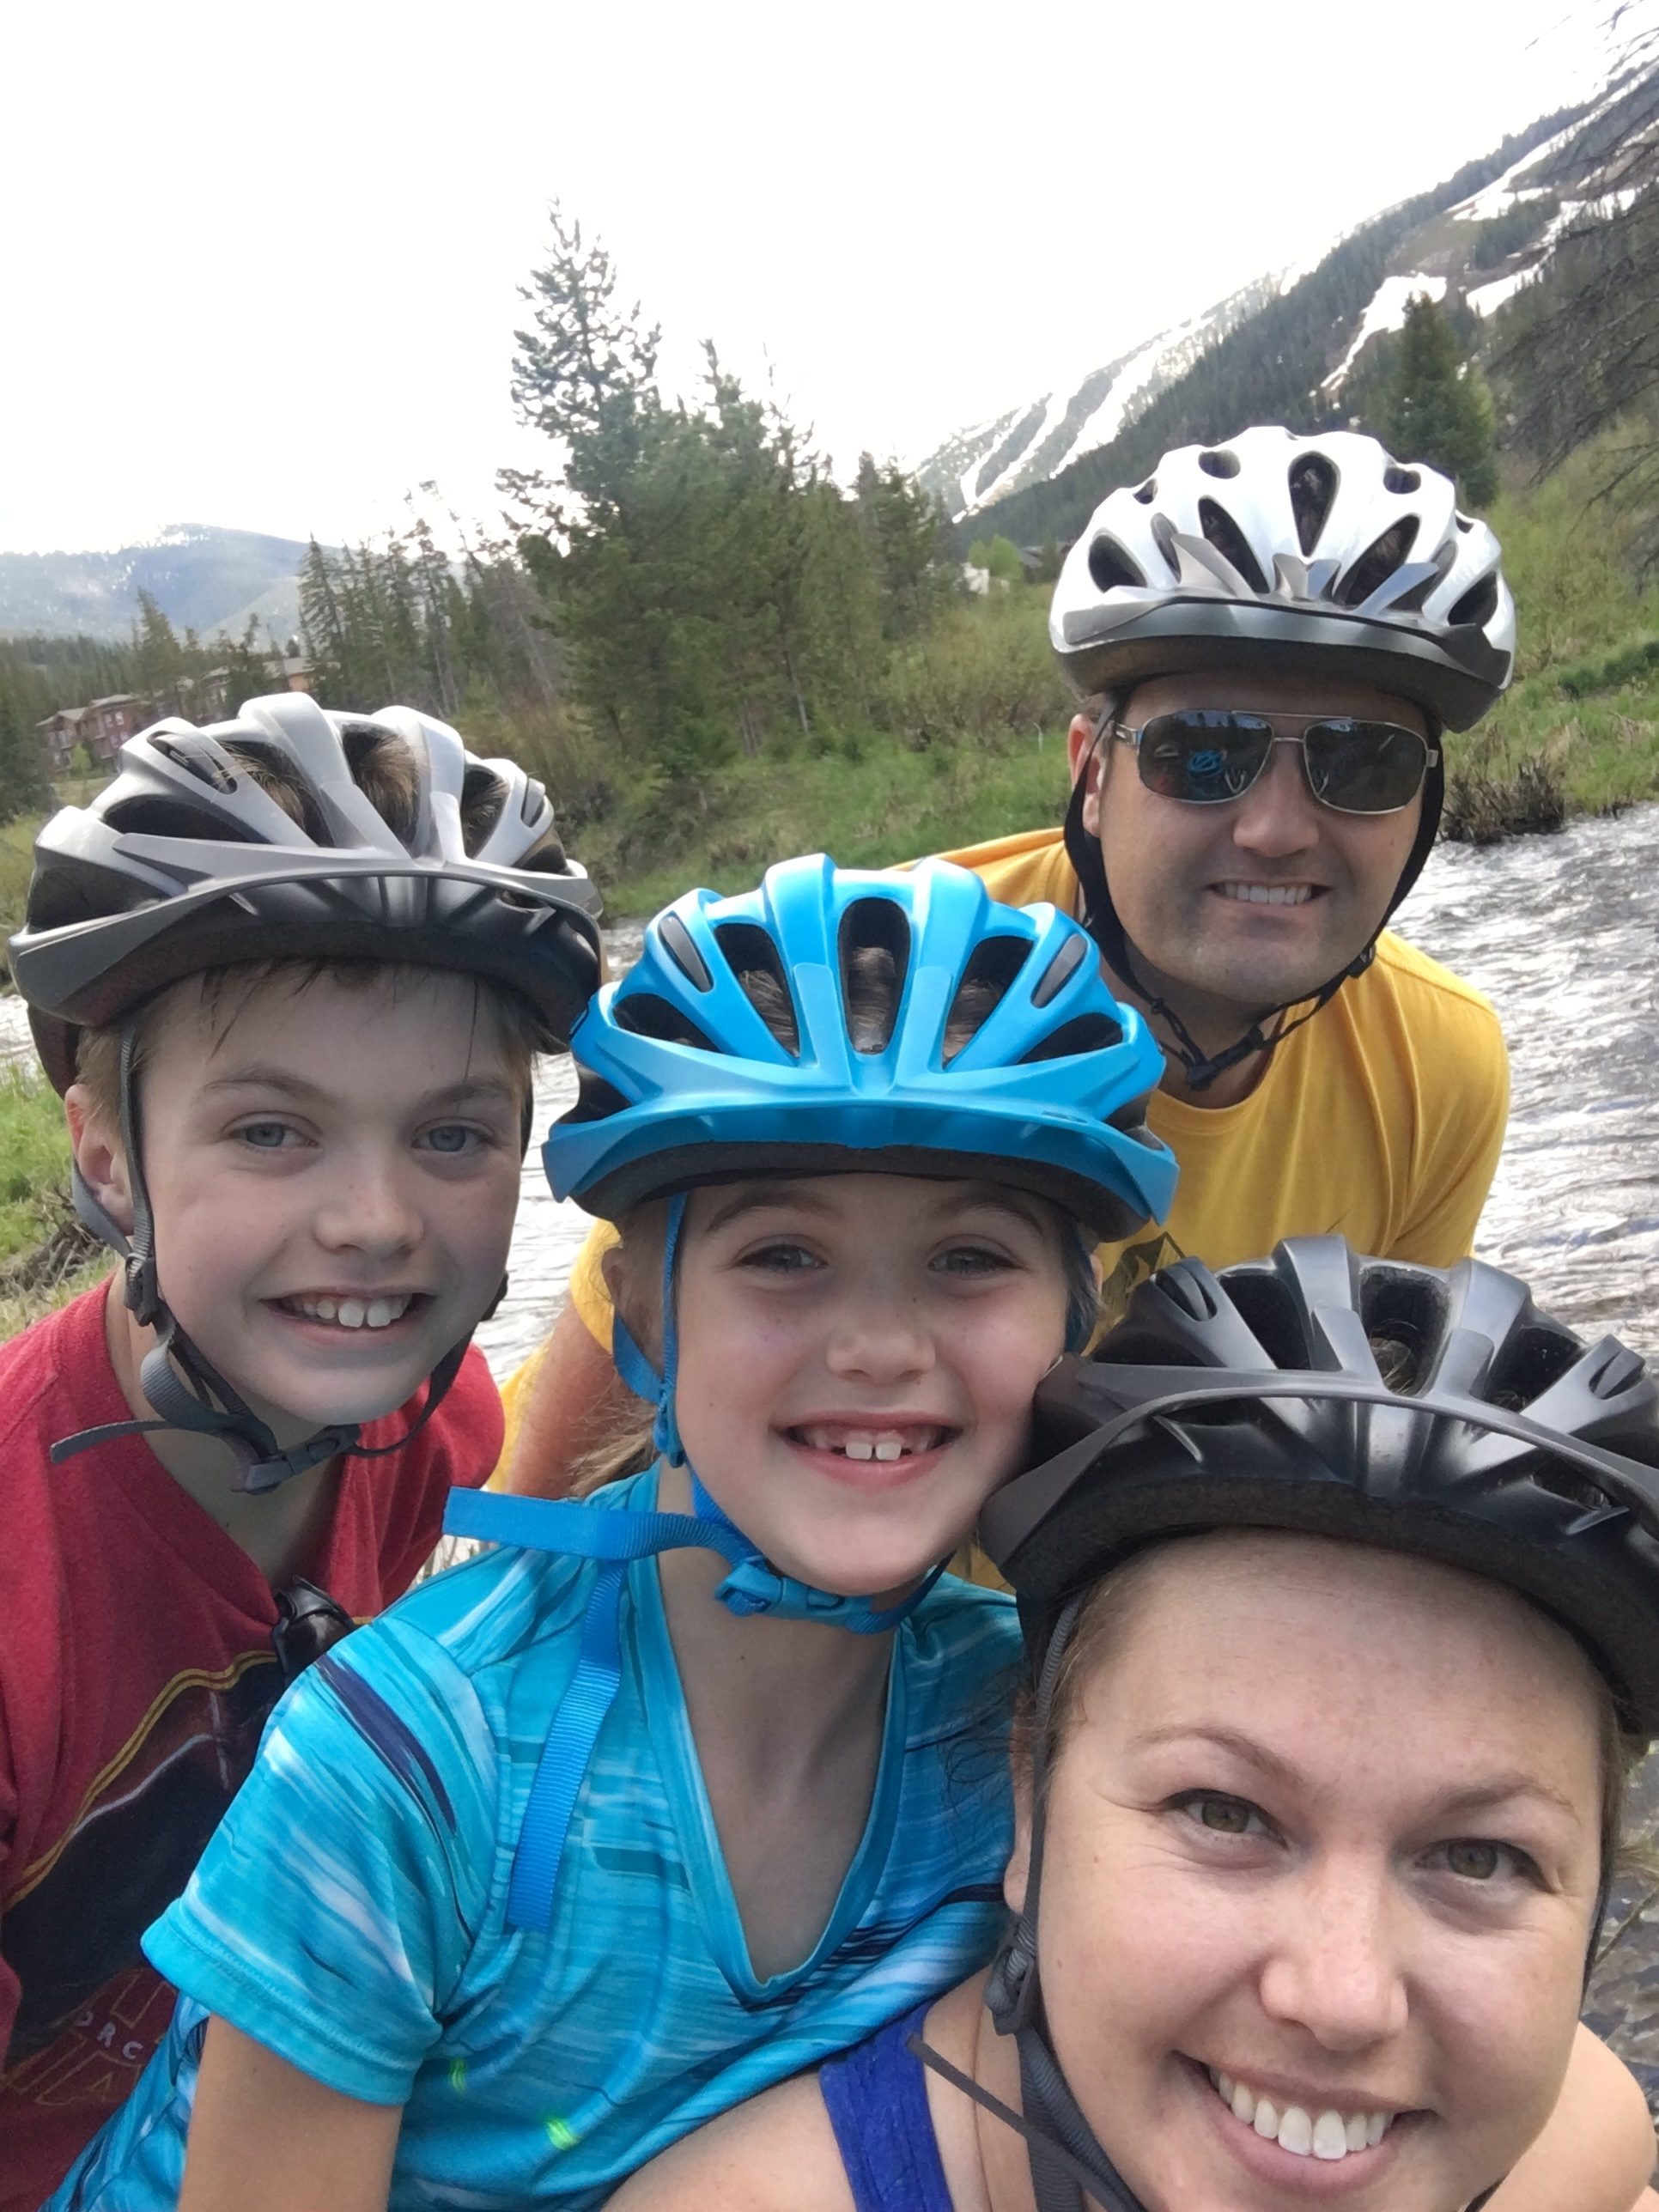 Family of four wearing biking helmets.